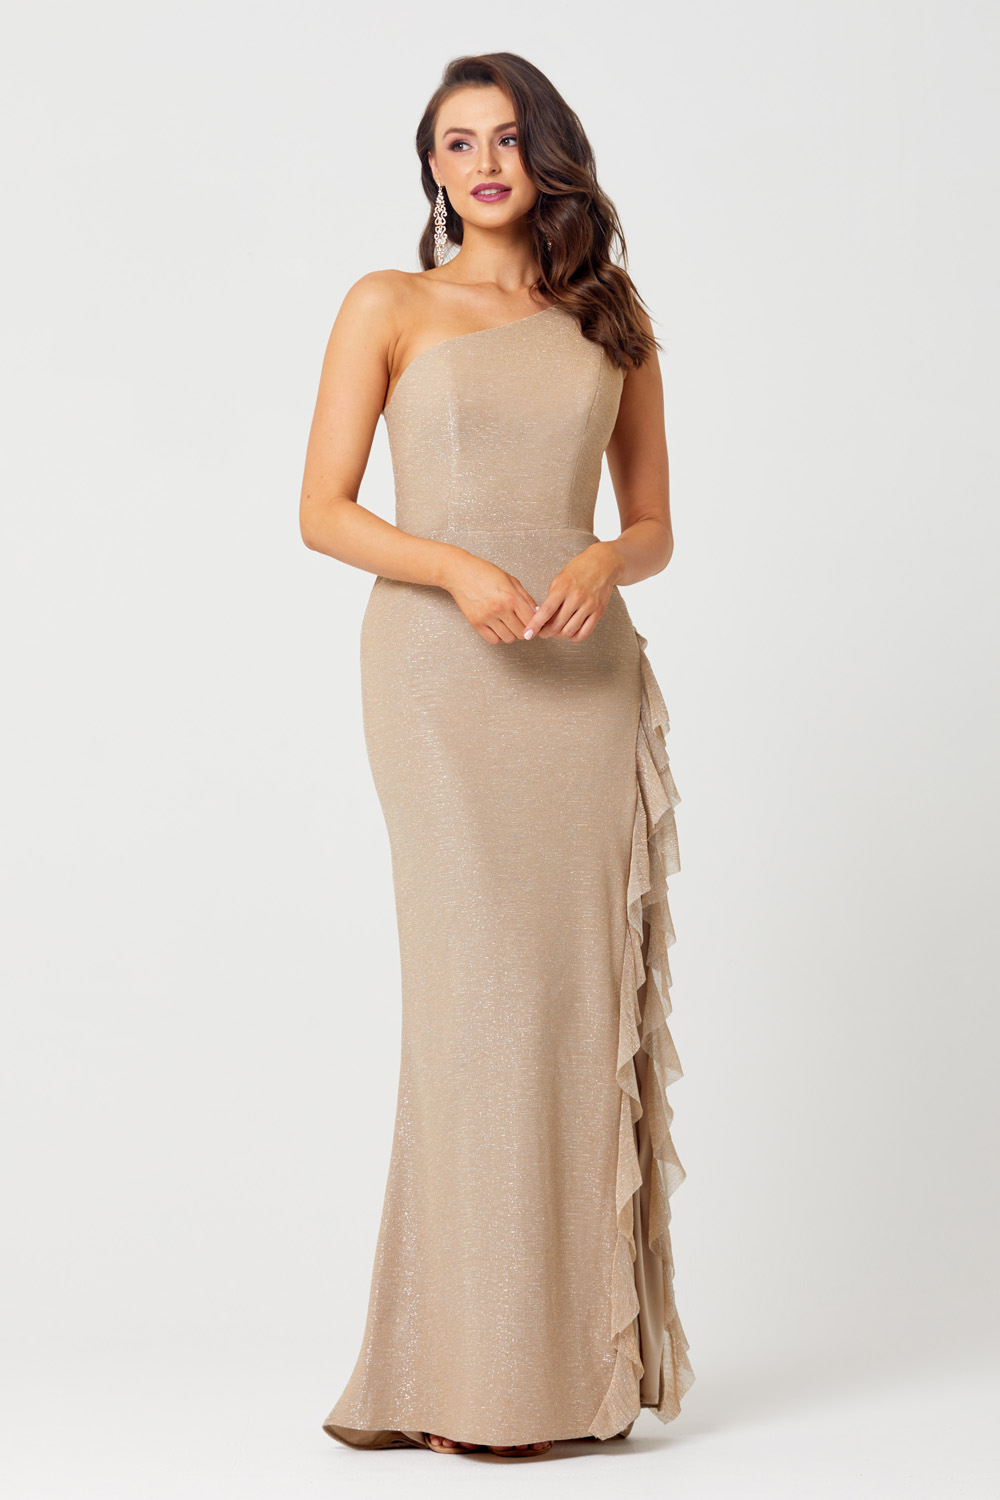 Corinne Evening Dress - TC279 Front